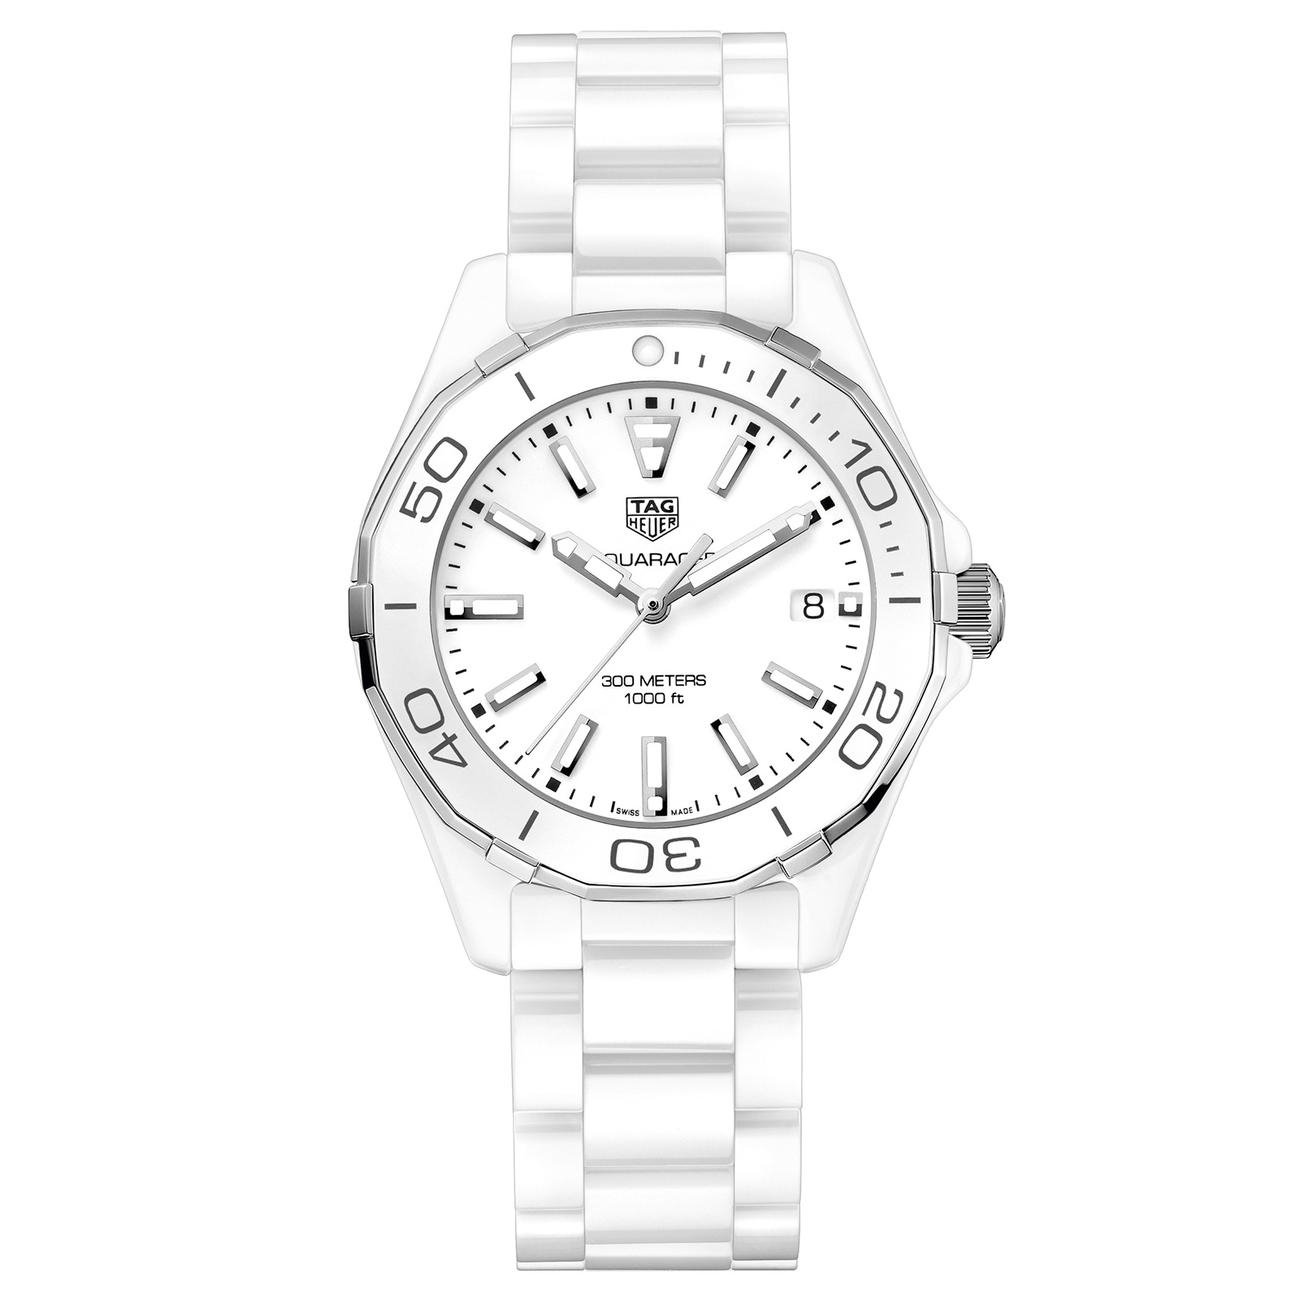 cac94924865 Amazon.com  Tag Heuer Aquaracer Lady 300M 35mm White Ceramic Watch  WAY1391.BH0717  Watches